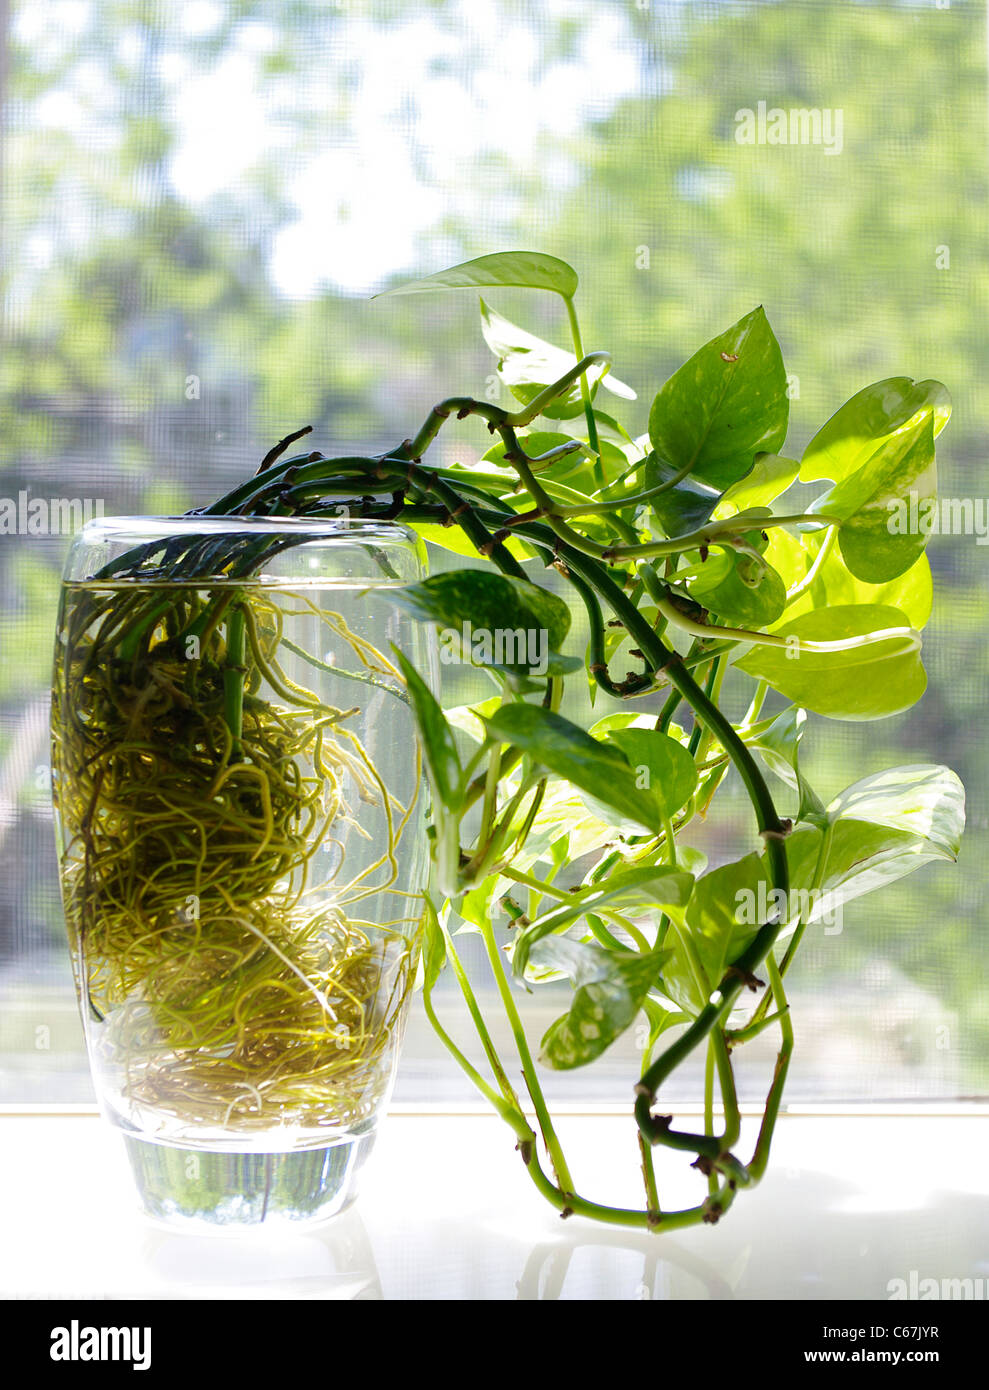 Common veriegated heart leaf Philodendron rooted hydroponically (Philodendron scandens oxycardium) - Stock Image